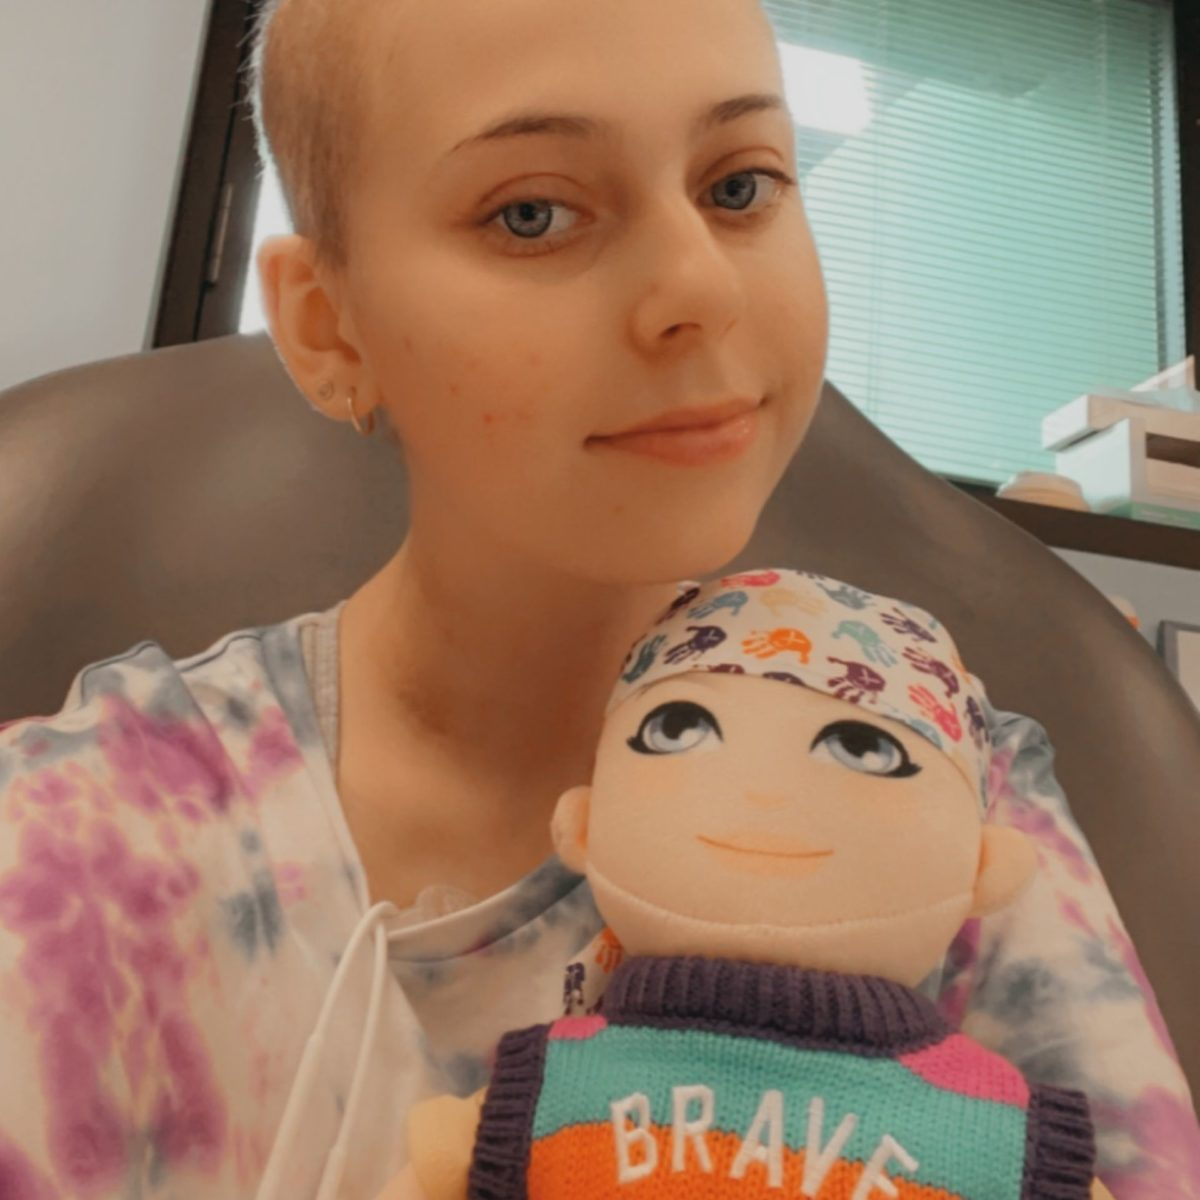 Female teenager, diagnosed with cancer, has lost her hair and is holding a doll wearing a headscarf and a bright striped jumper featuring the word 'Brave'.